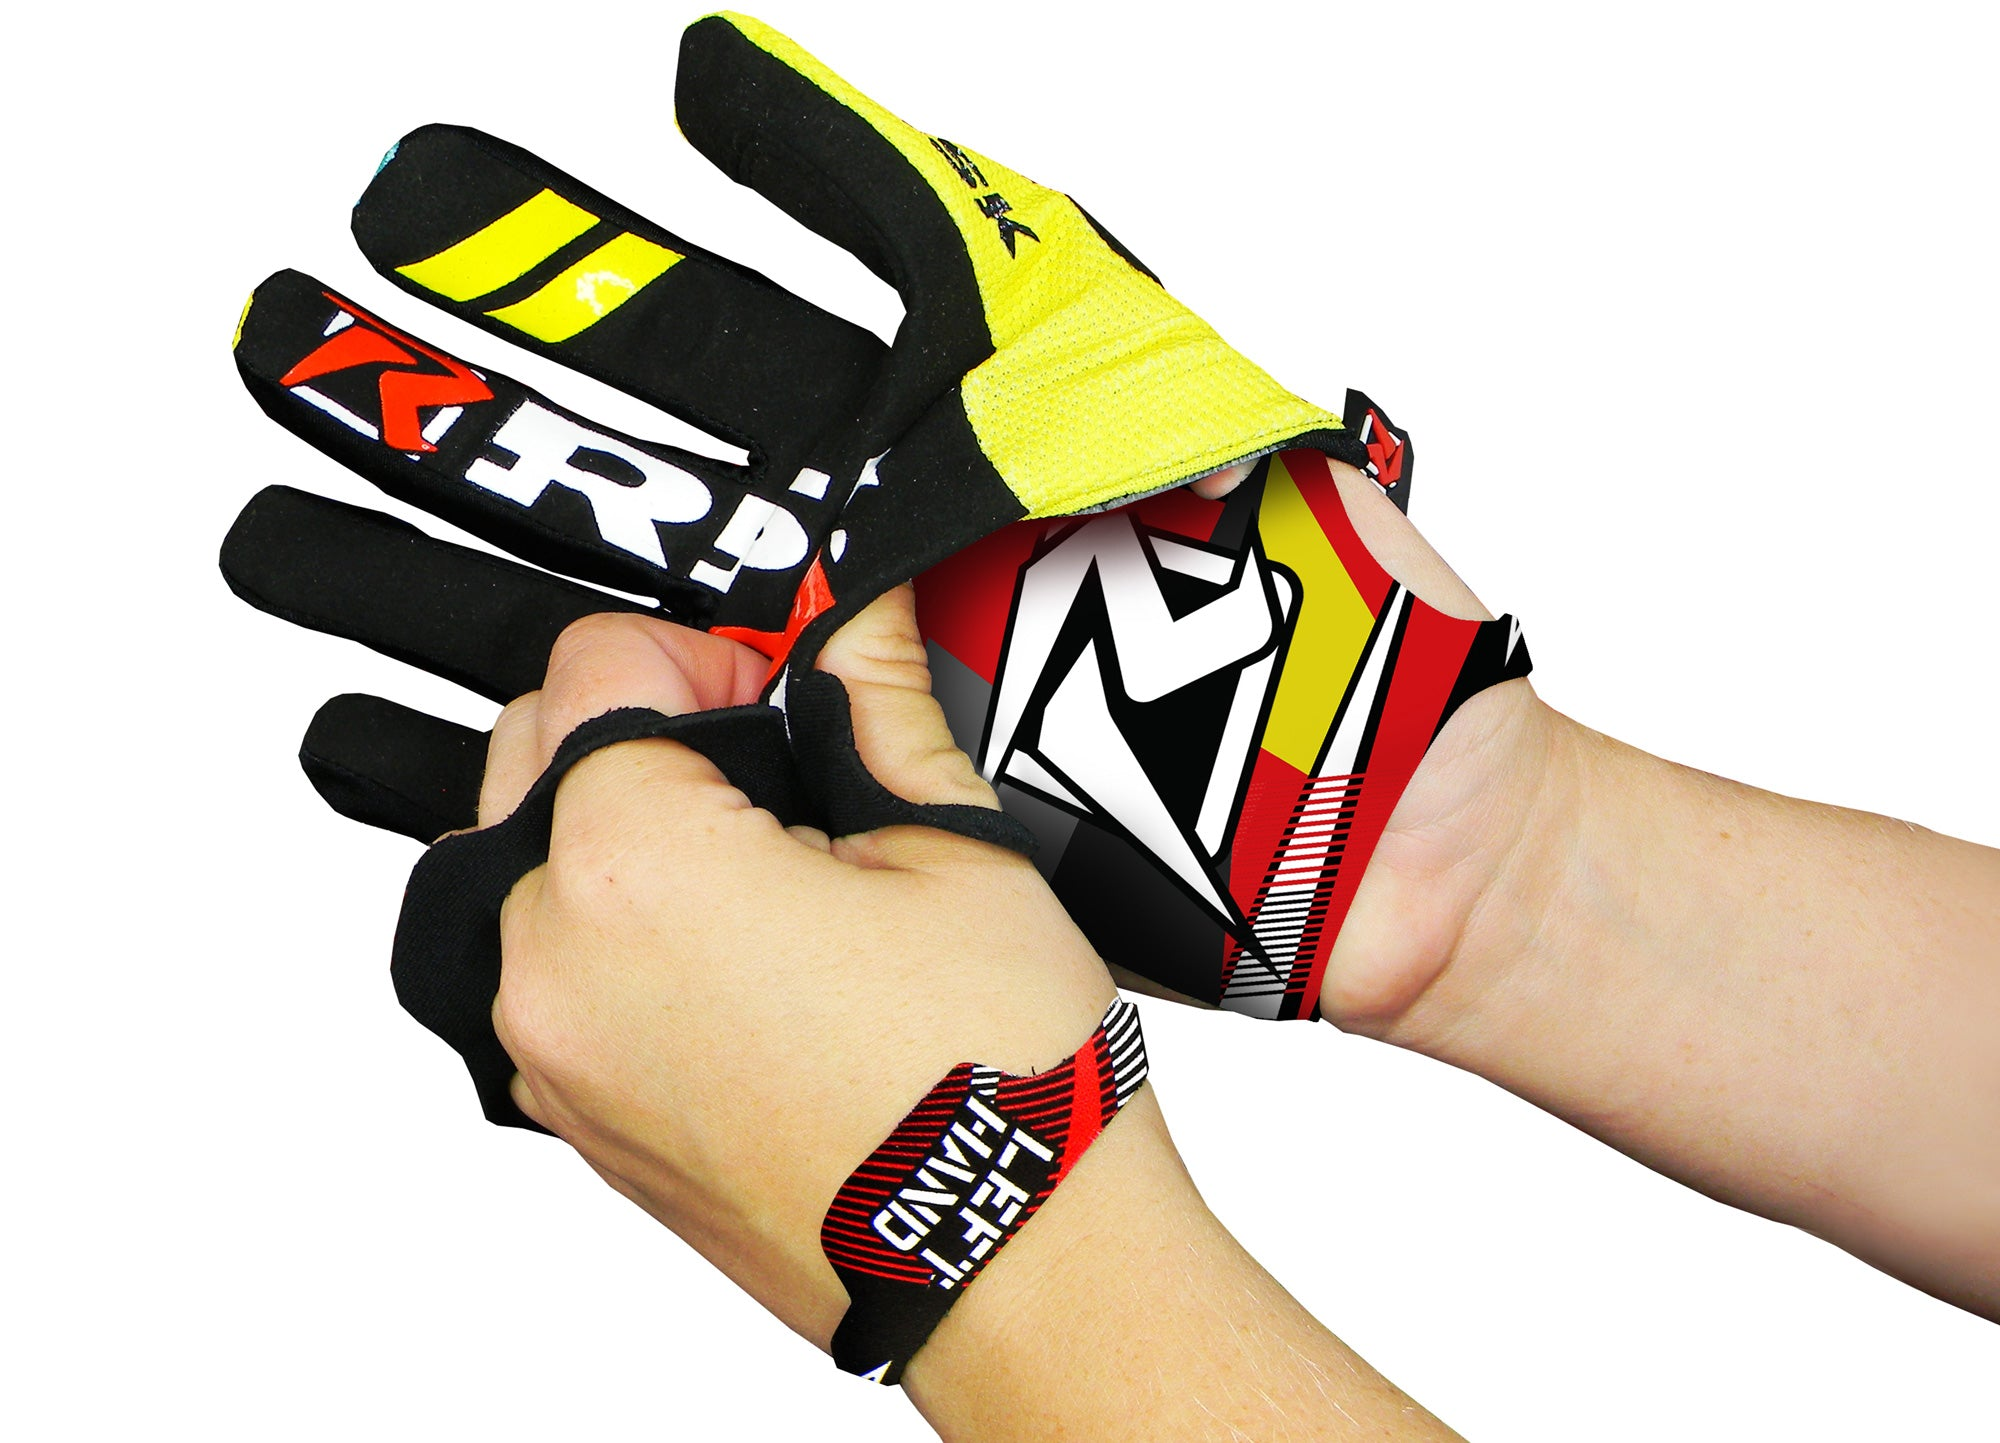 Wear Risk Racing Palm Protectors under gloves